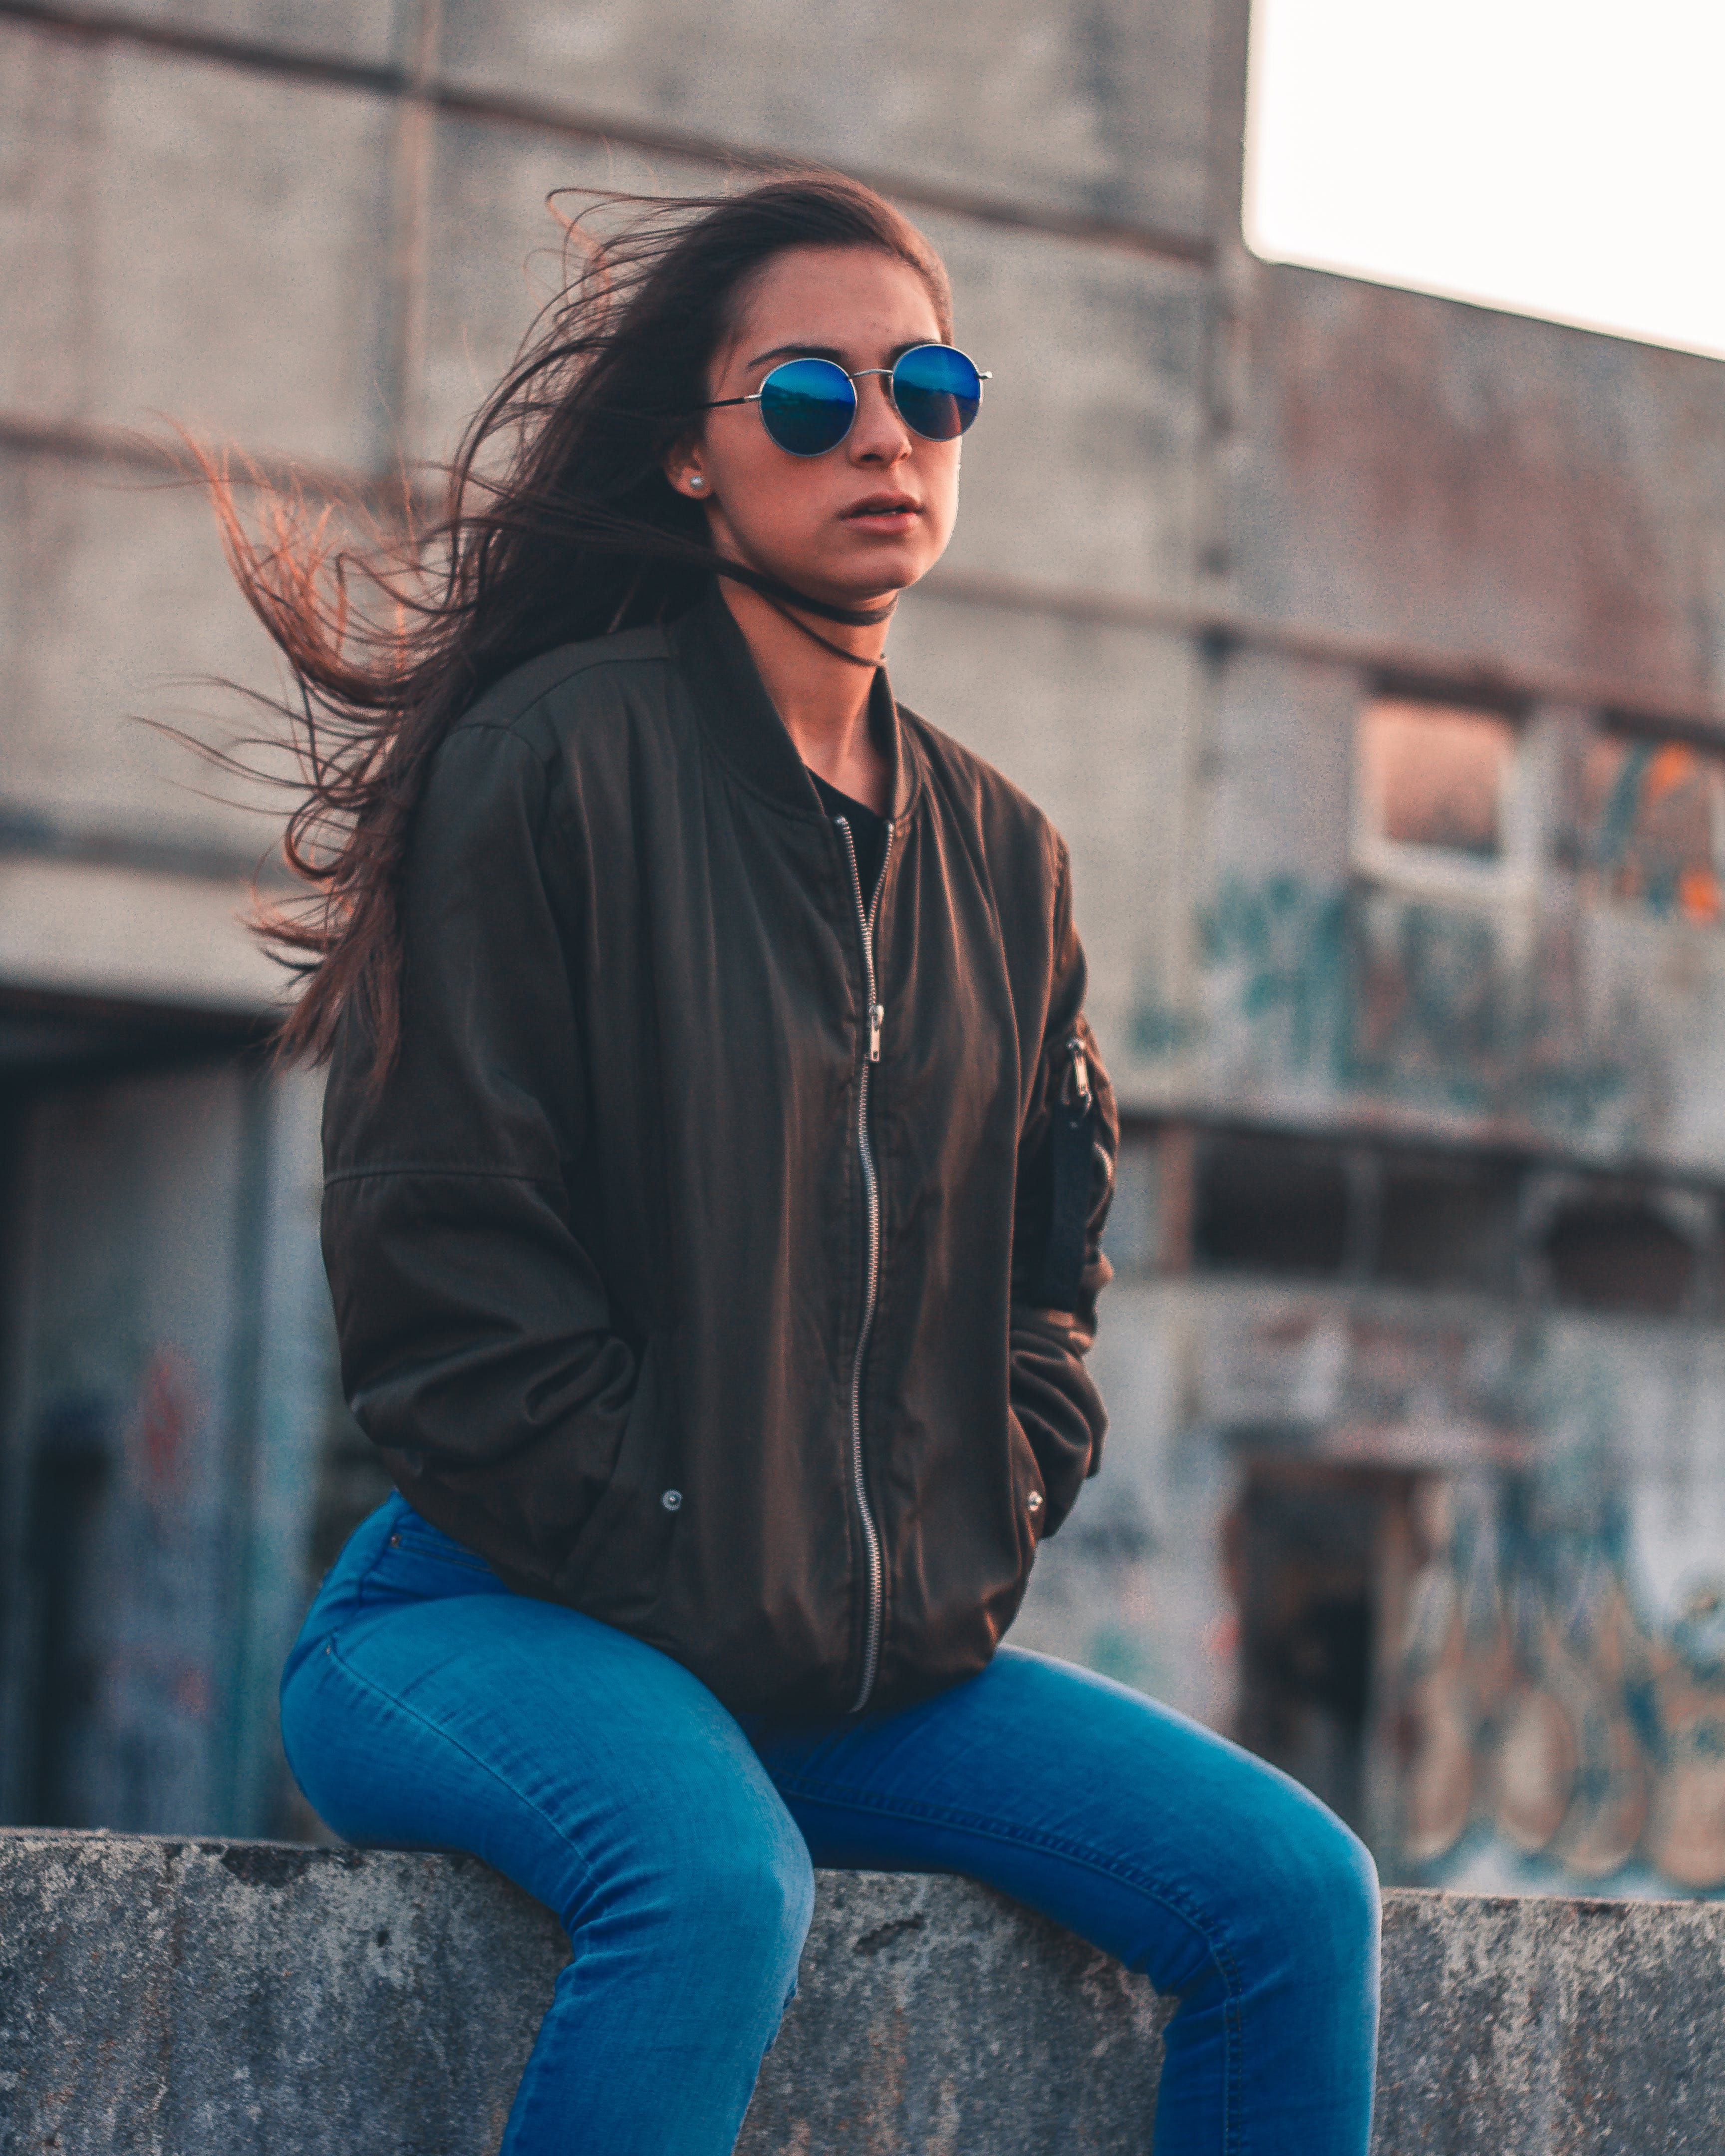 Free stock photo of person, sunglasses, woman, girl